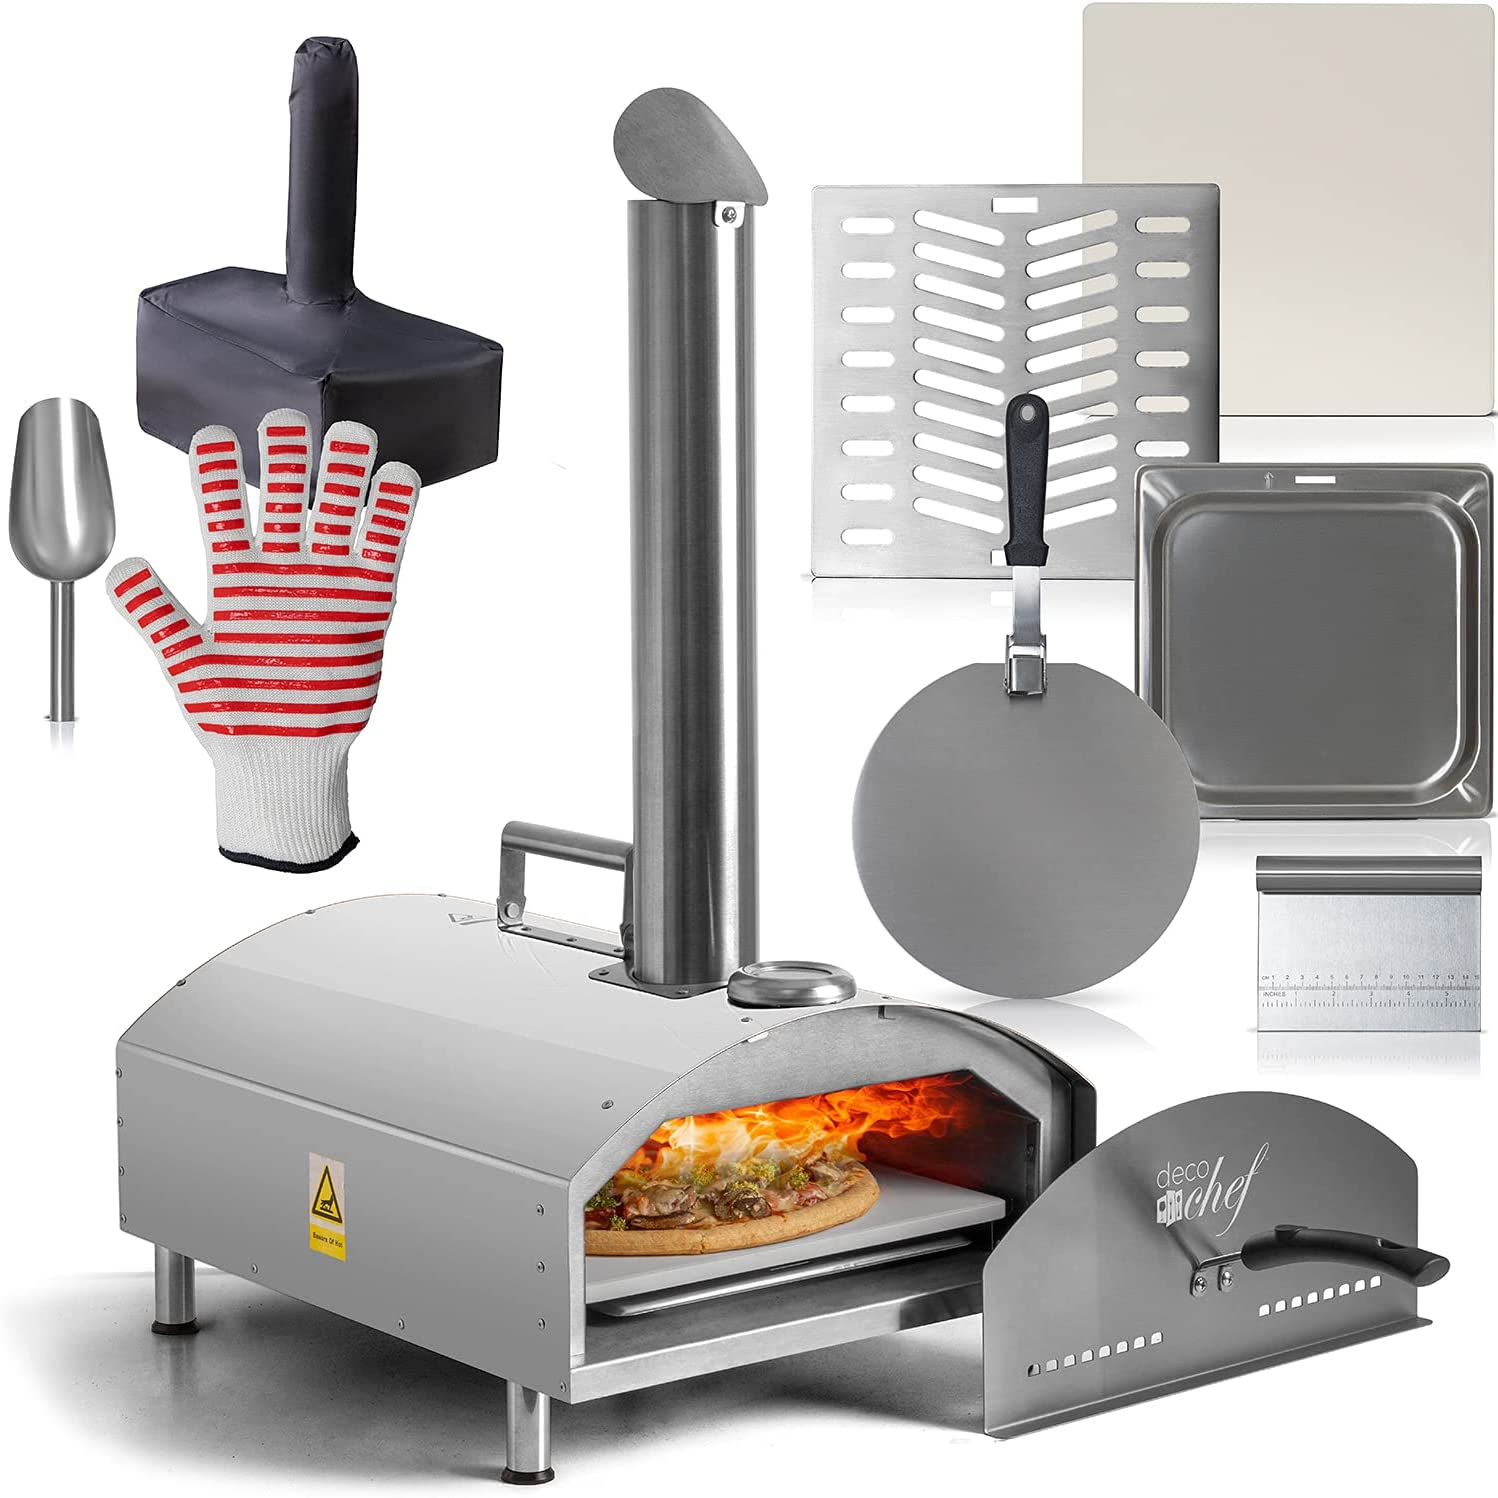 10 Best Outdoor Pizza Oven 2021 - Reviews & Guide